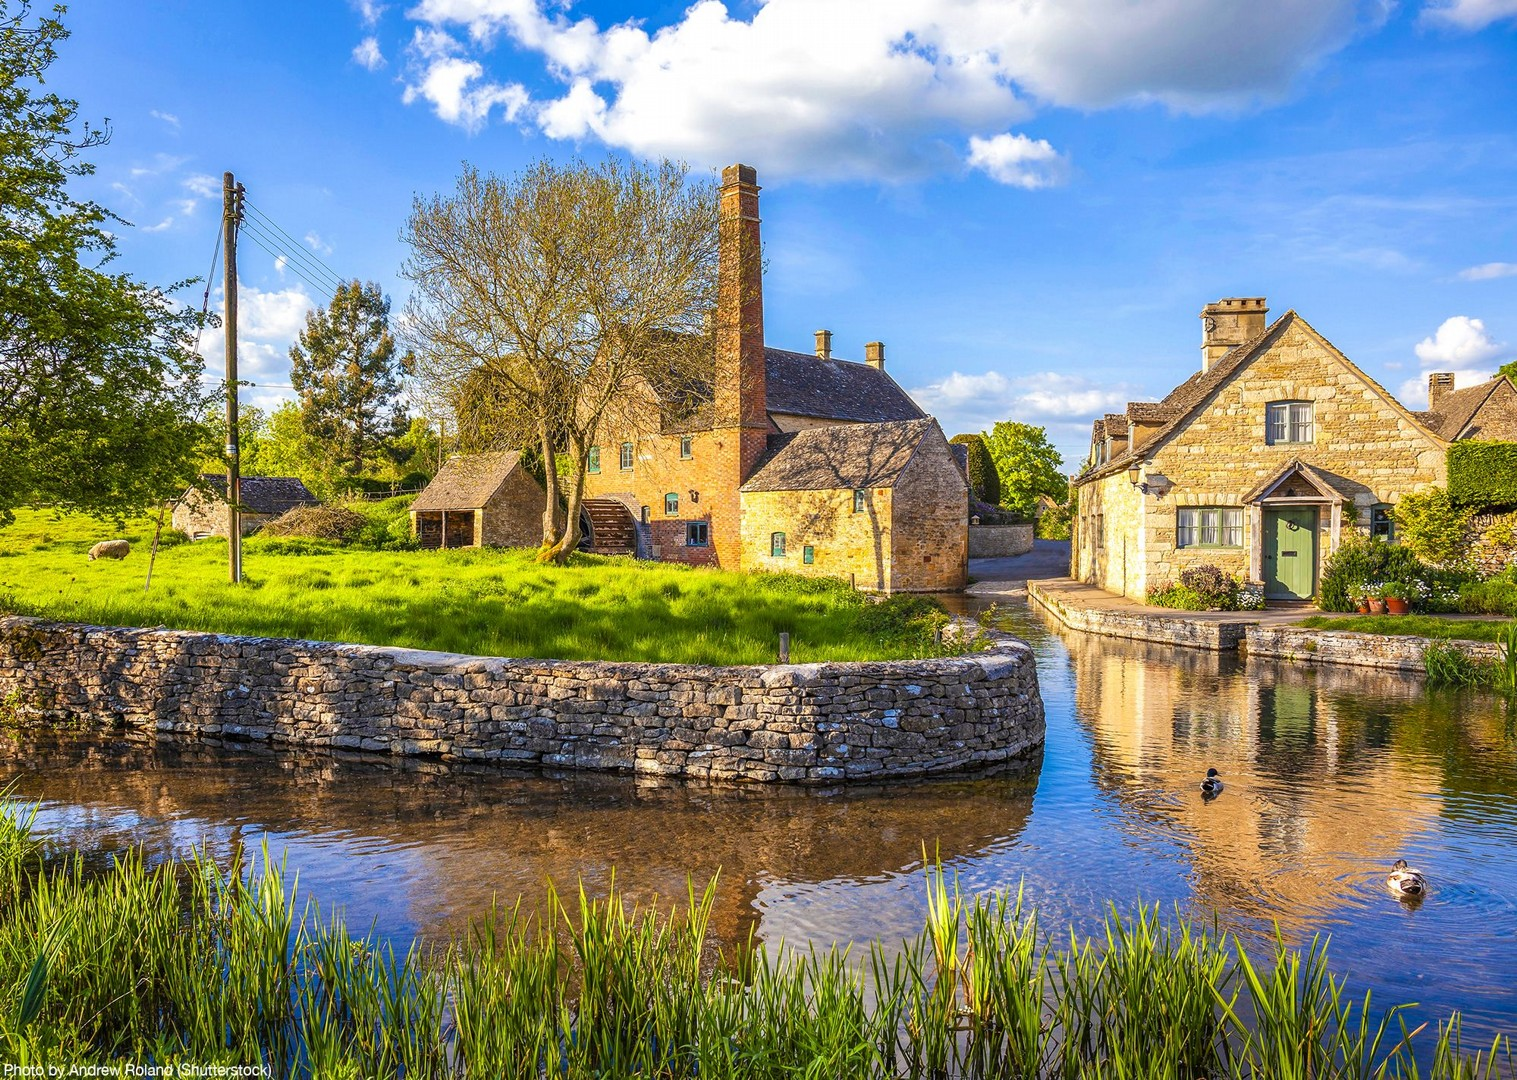 villages-south-uk-fun-family-friends-cycling-bike-holiday-tour-saddle-skedaddle.jpg - UK - Cotswolds - Bourton-on-the-Water - Self-Guided Leisure Cycling Holiday - Leisure Cycling